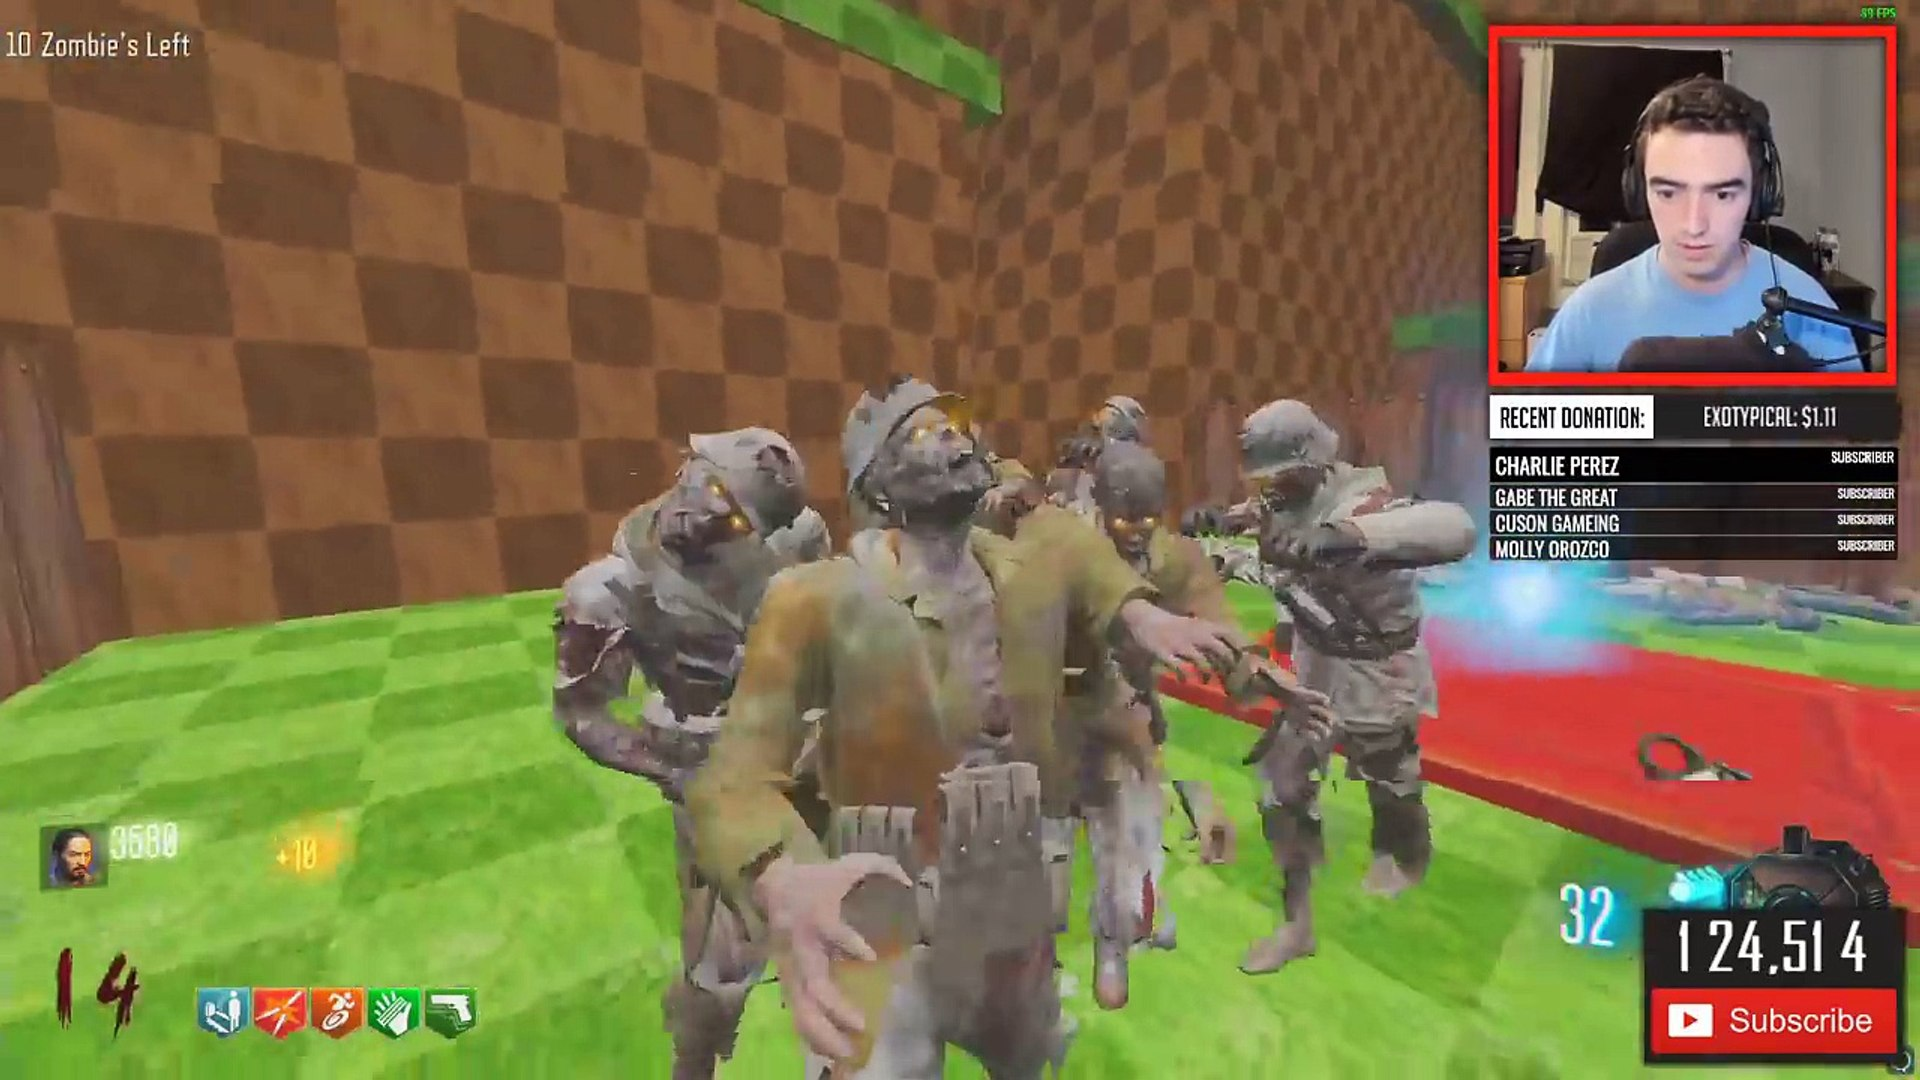 CATCH ME IF YOU CAN! SONIC ZOMBIES! BLACK OPS 3 CUSTOM ZOMBIES MAP! on custom zombies rocket base 10, custom zombies tmg, custom nazi zombies, star wars miniatures maps, battletech maps, custom cod zombies, call duty black ops zombies all maps, custom zombies airport, black ops 2 zombies maps,